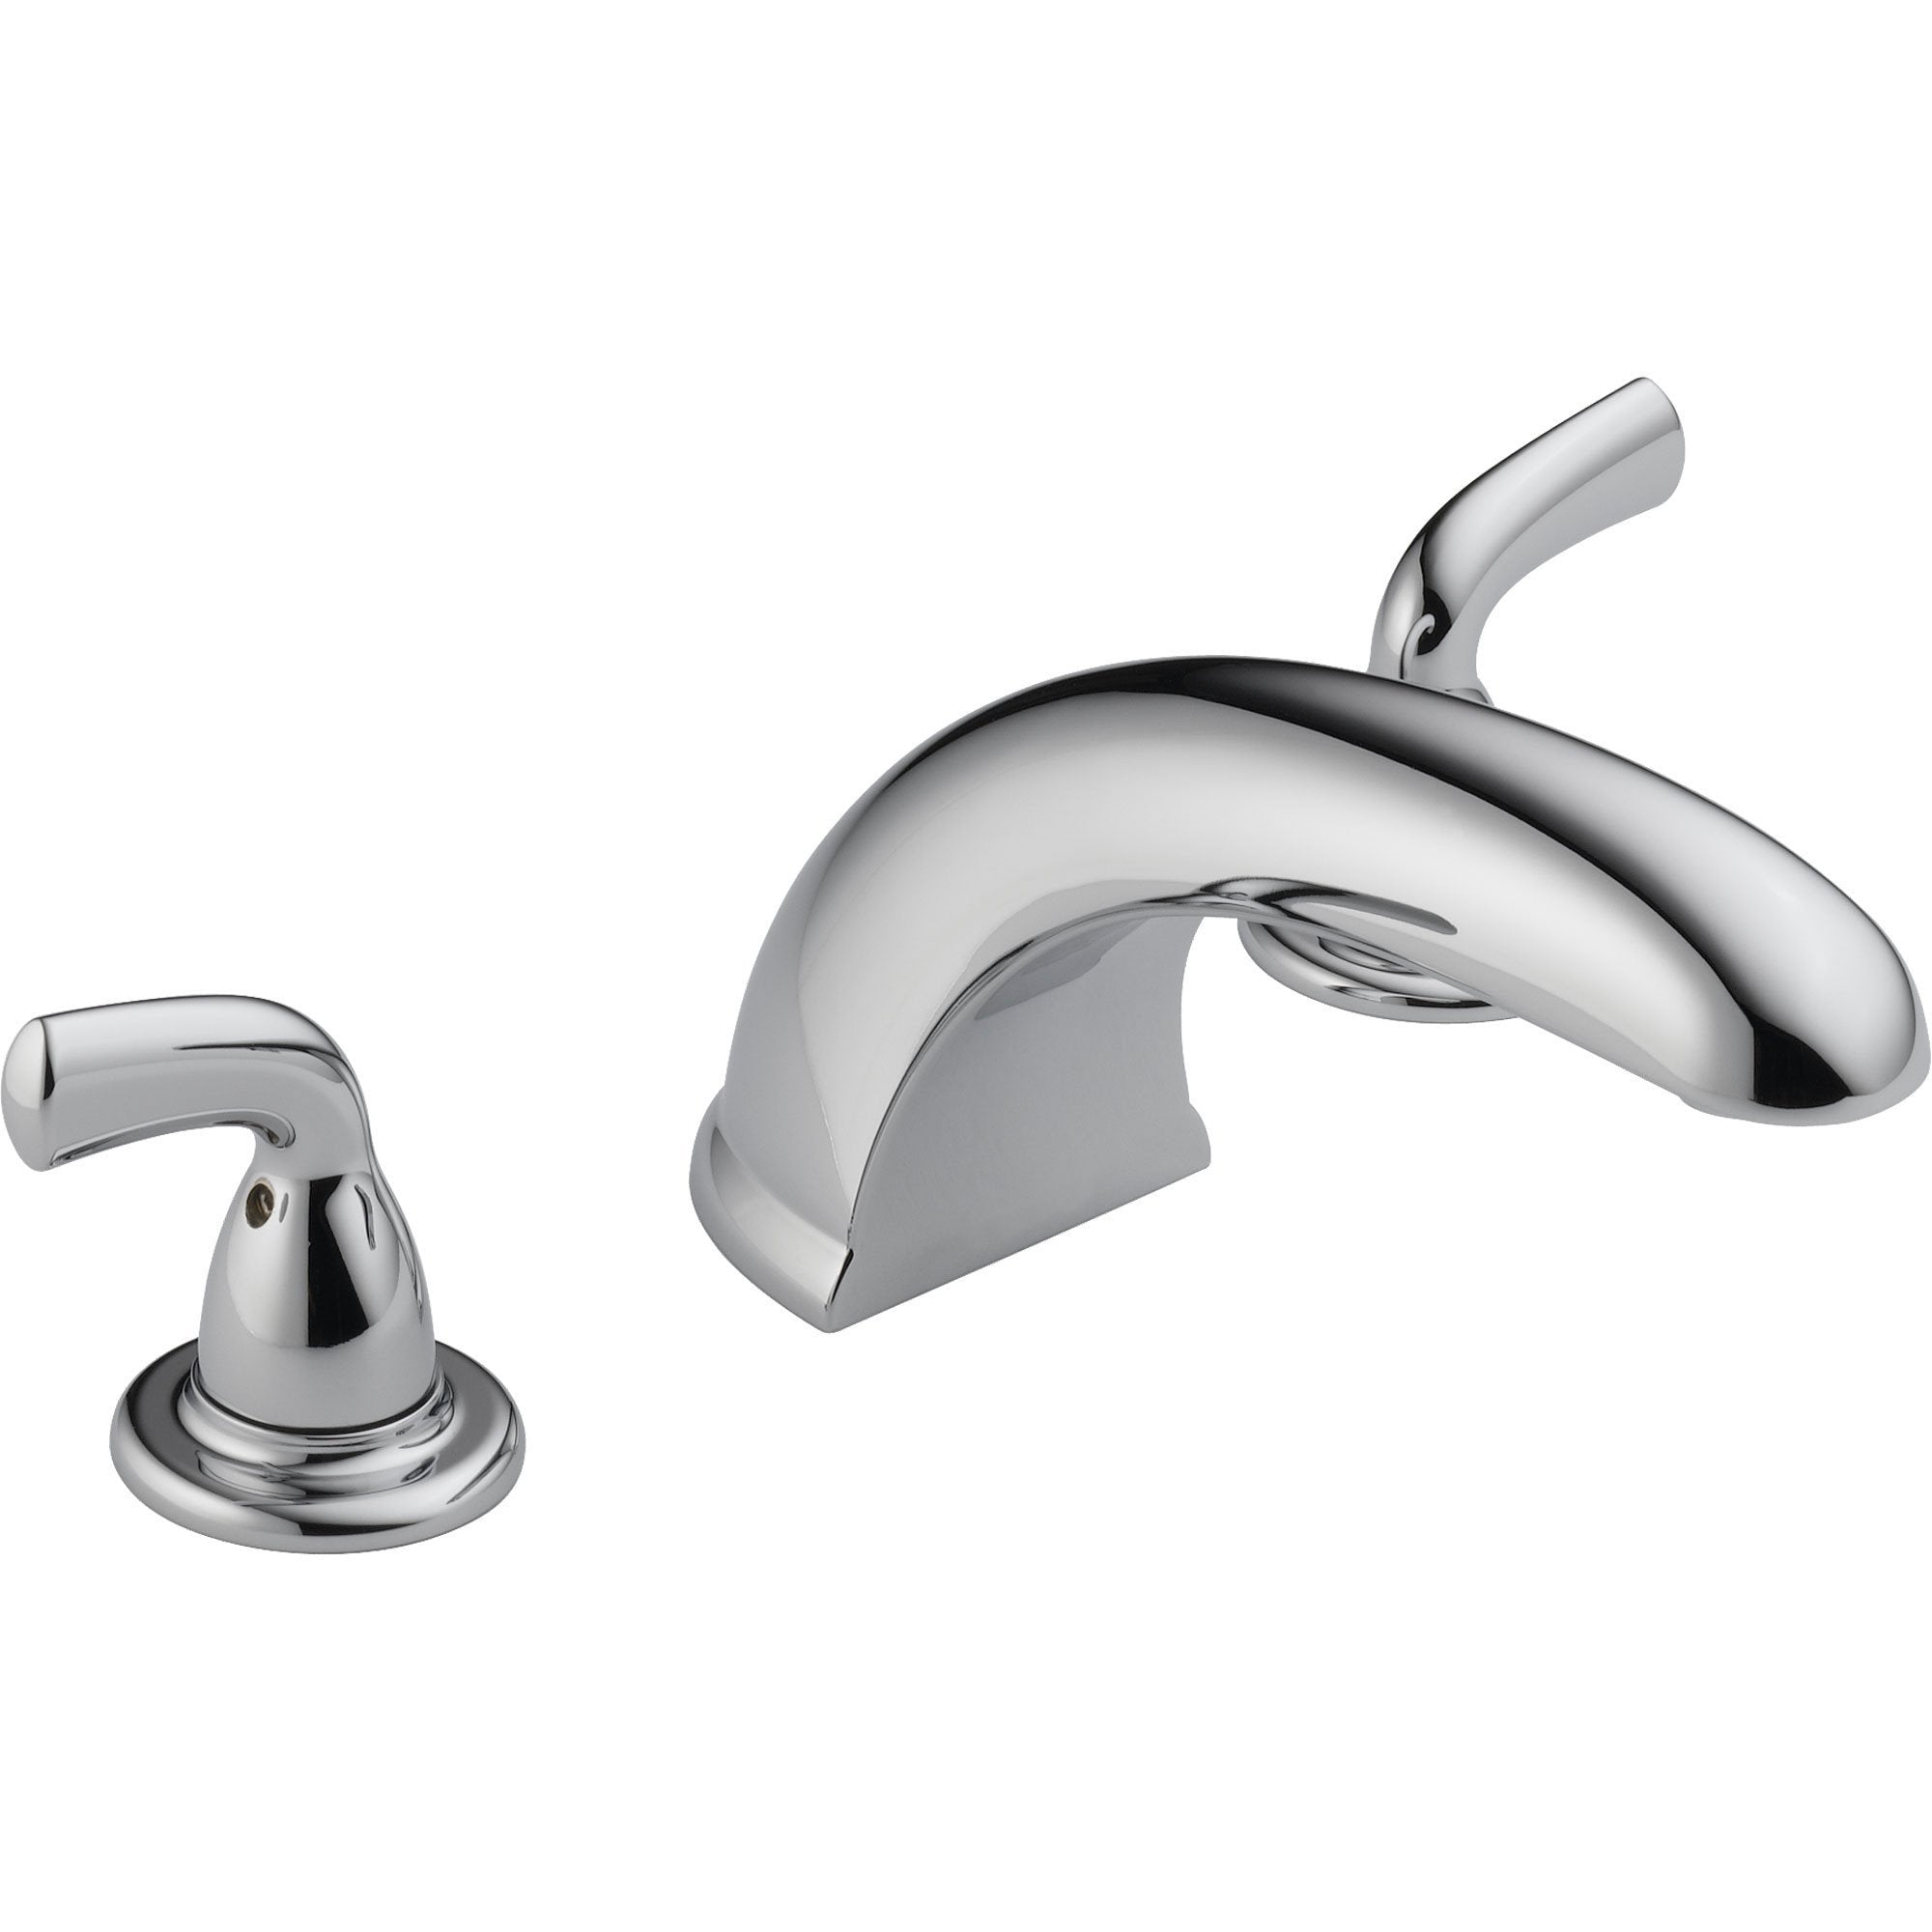 Delta Widespread Chrome Roman Tub Filler Faucet Trim Kit 550067